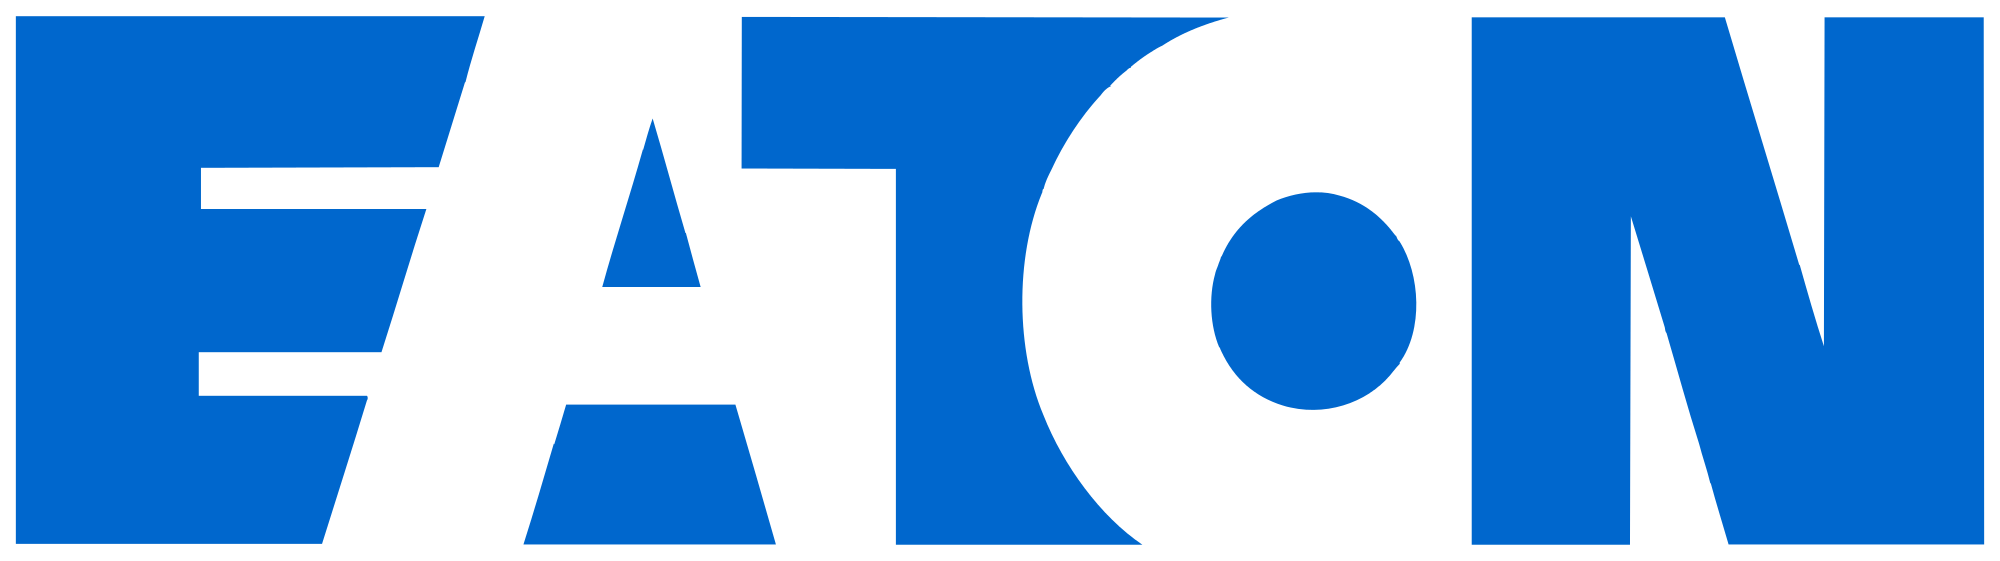 Eaton_Corporation_logo.svg.png